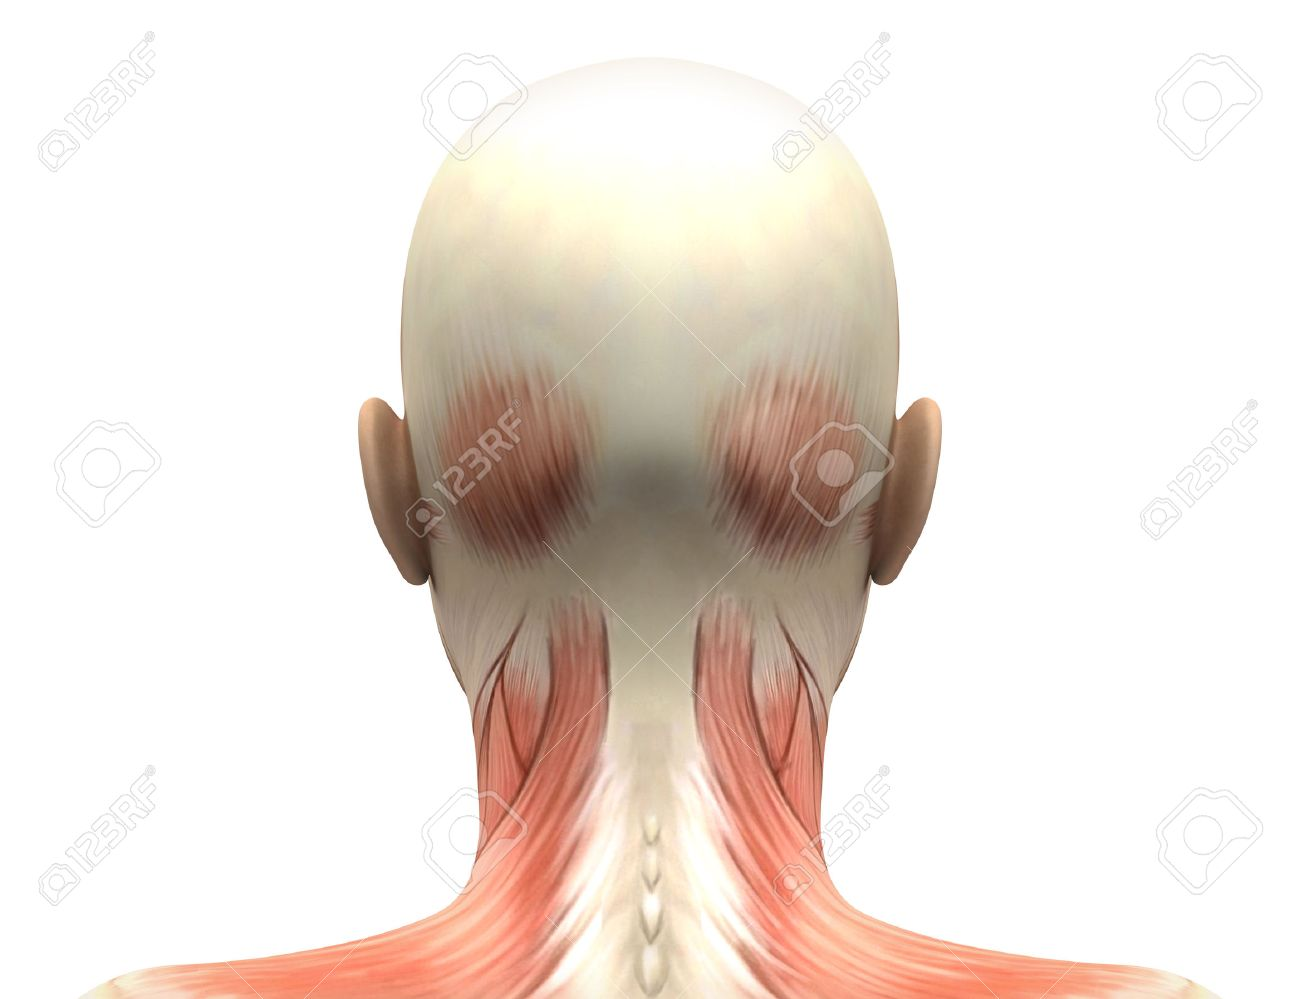 Female Head Muscles Anatomy - Back View Stock Photo, Picture And ...